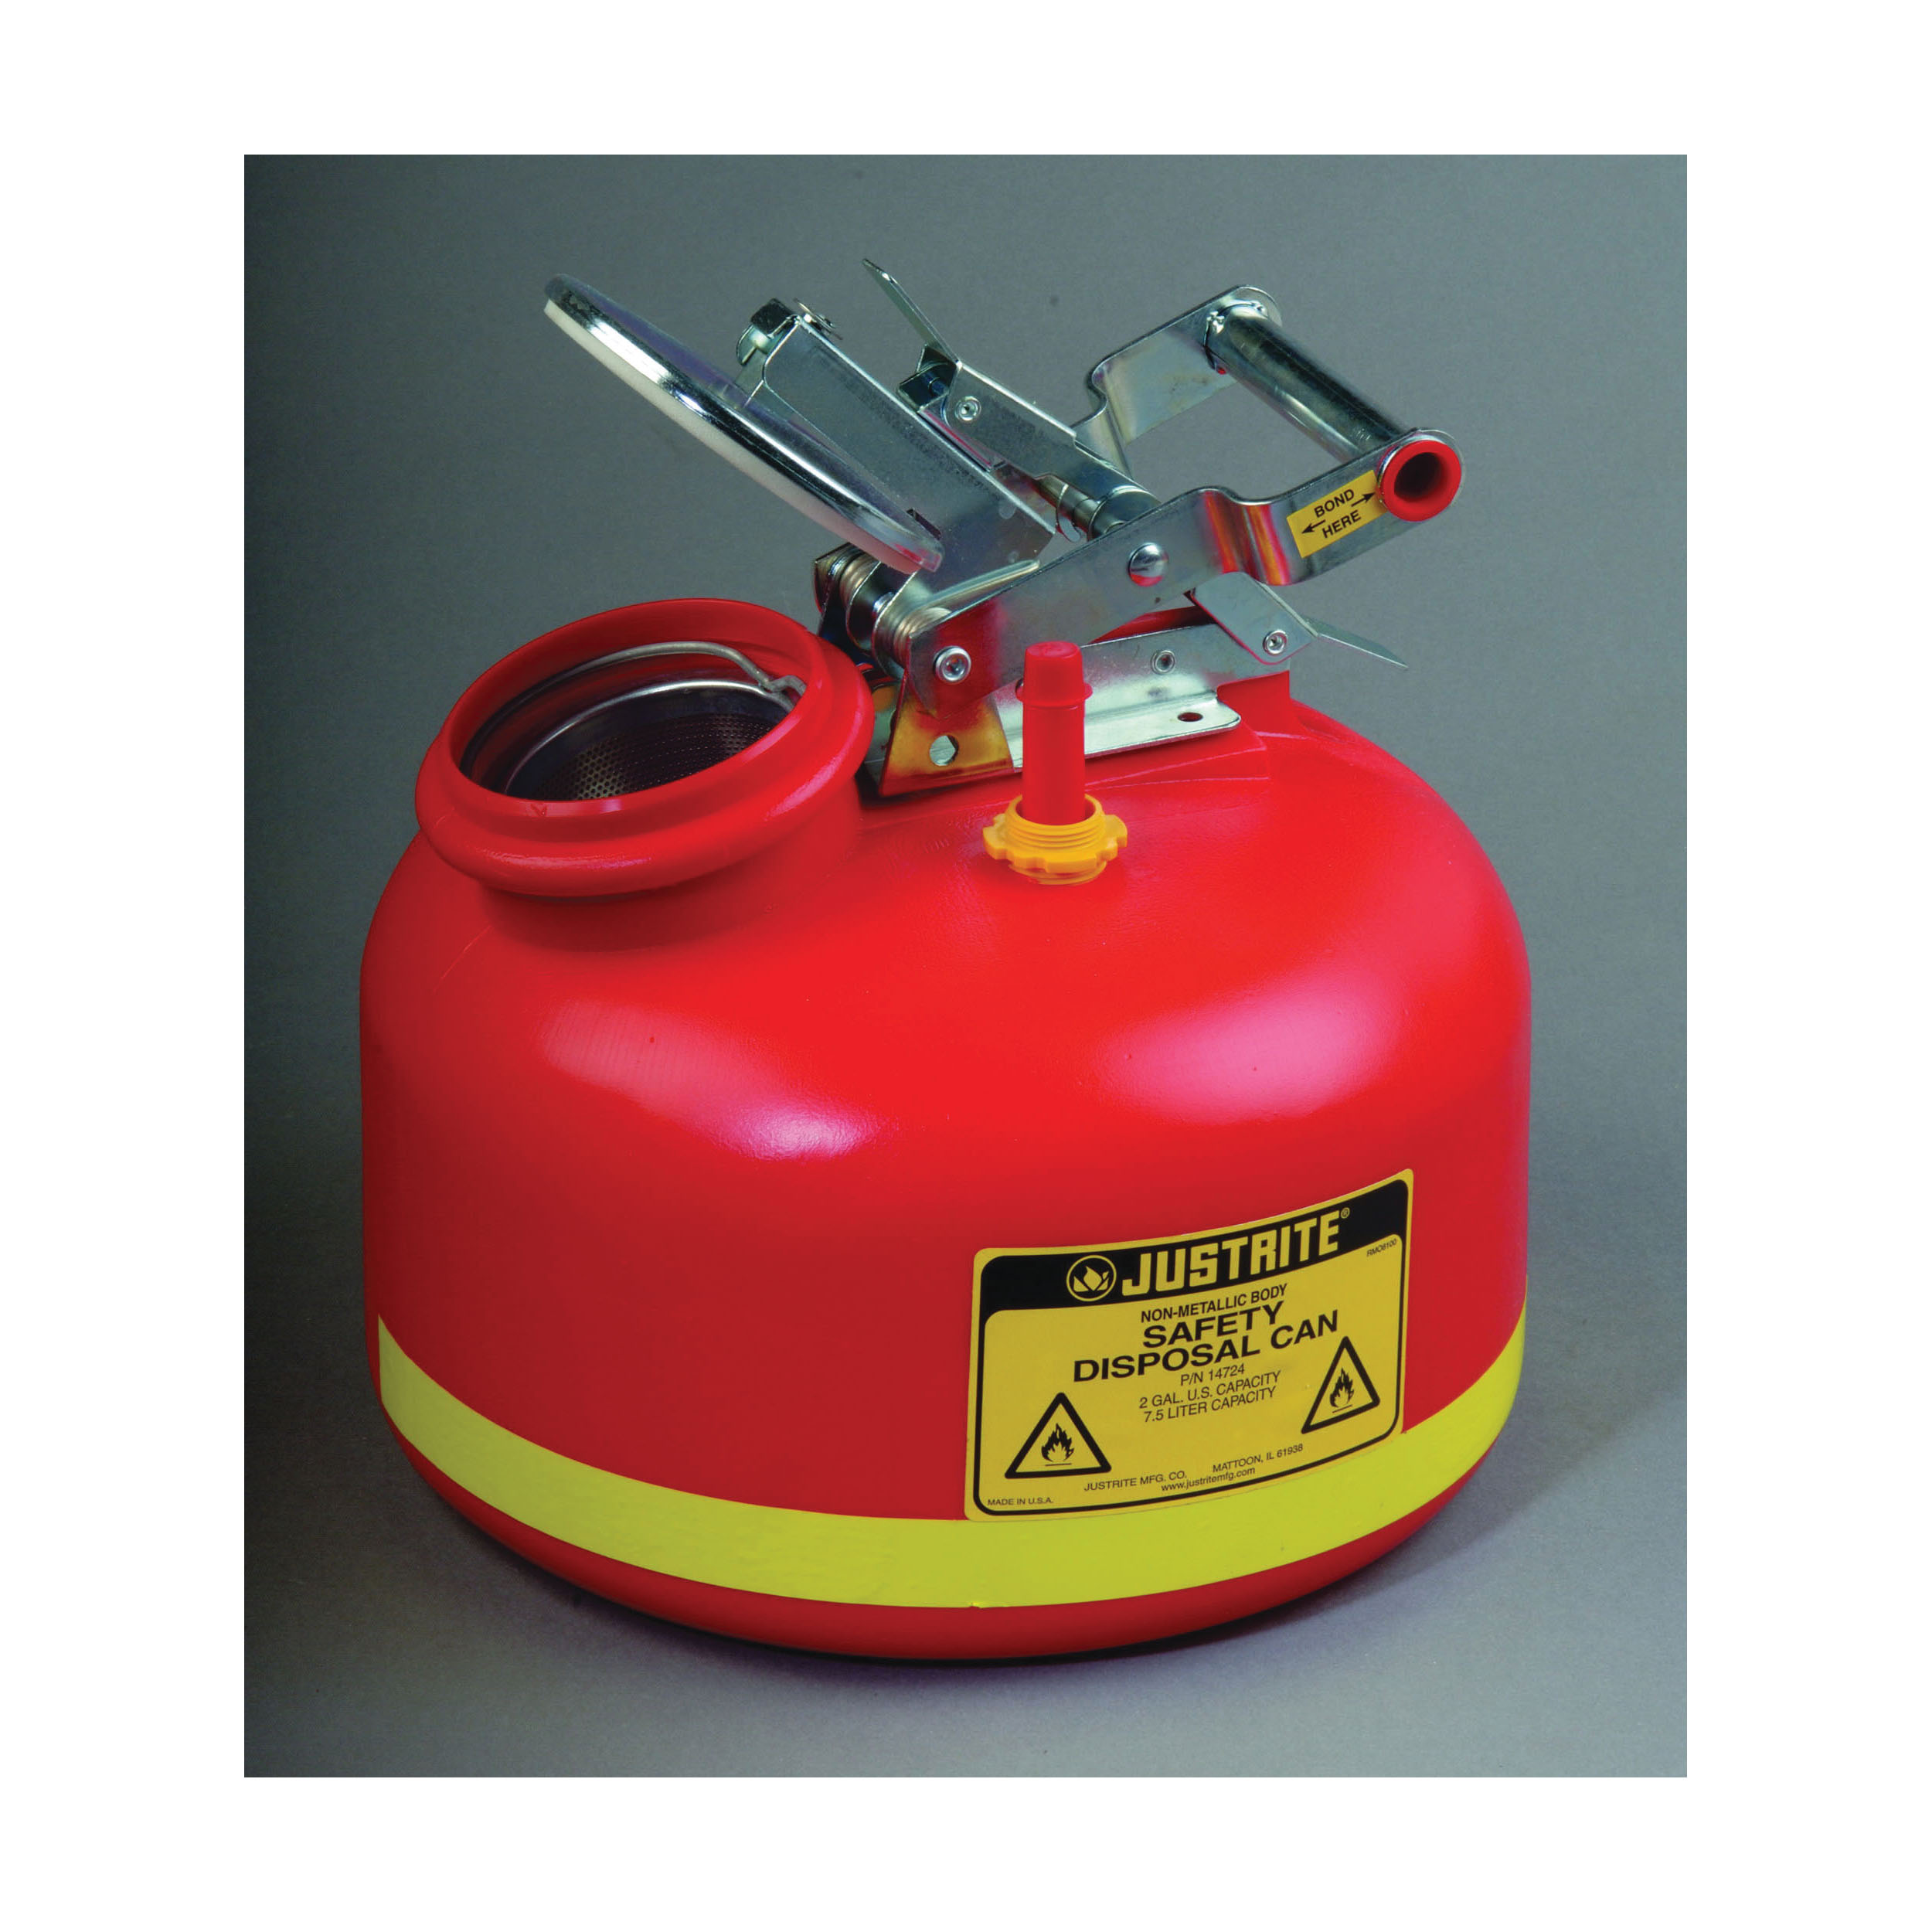 Justrite® 14265 Liquid Disposal Safety Can With Stainless Steel Hardware, 2 gal Capacity, 12 in Dia, 14-3/4 in H, Polyethylene, Red, FM Approved, OSHA Approved